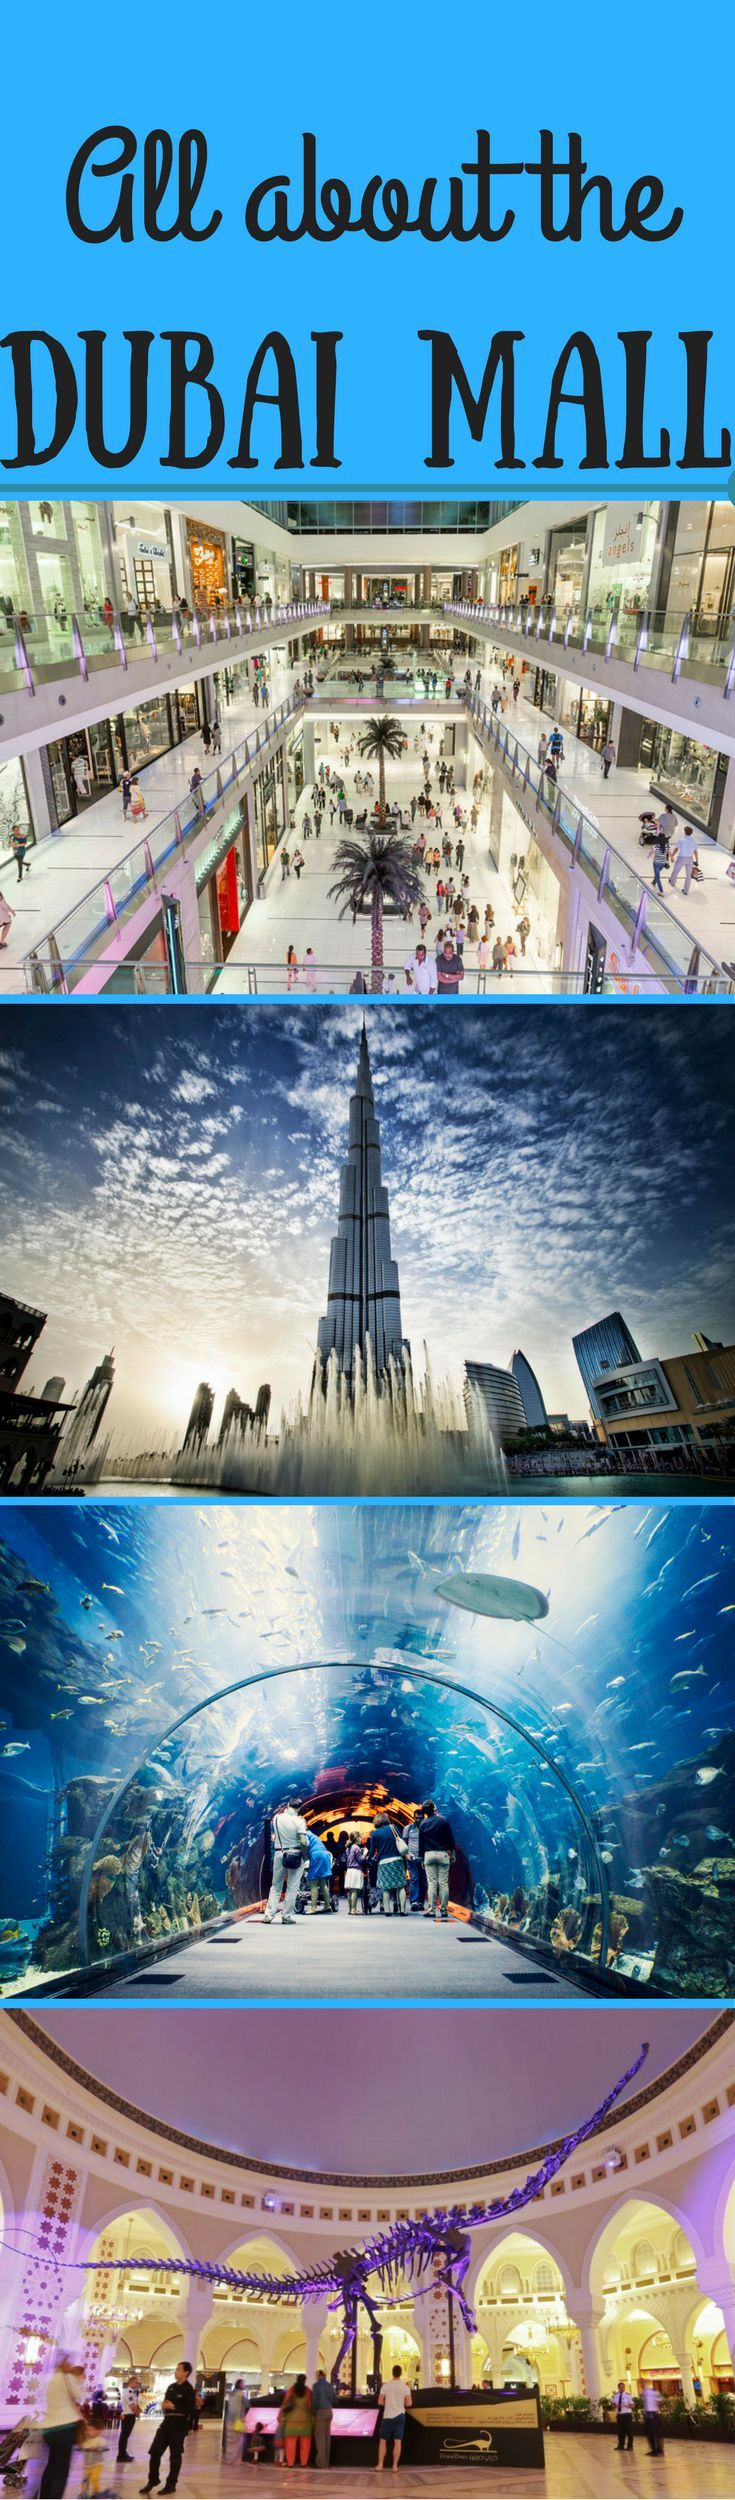 The Dubai Mall is one of the biggest in the world and one of the top attractions in Dubai. Inside there is the Dubai Aquarium, the Dubai Dino, and plenty of shops. Outside you can see the stunning Dubai fountains by the Burj Khalifa. Find out more about t